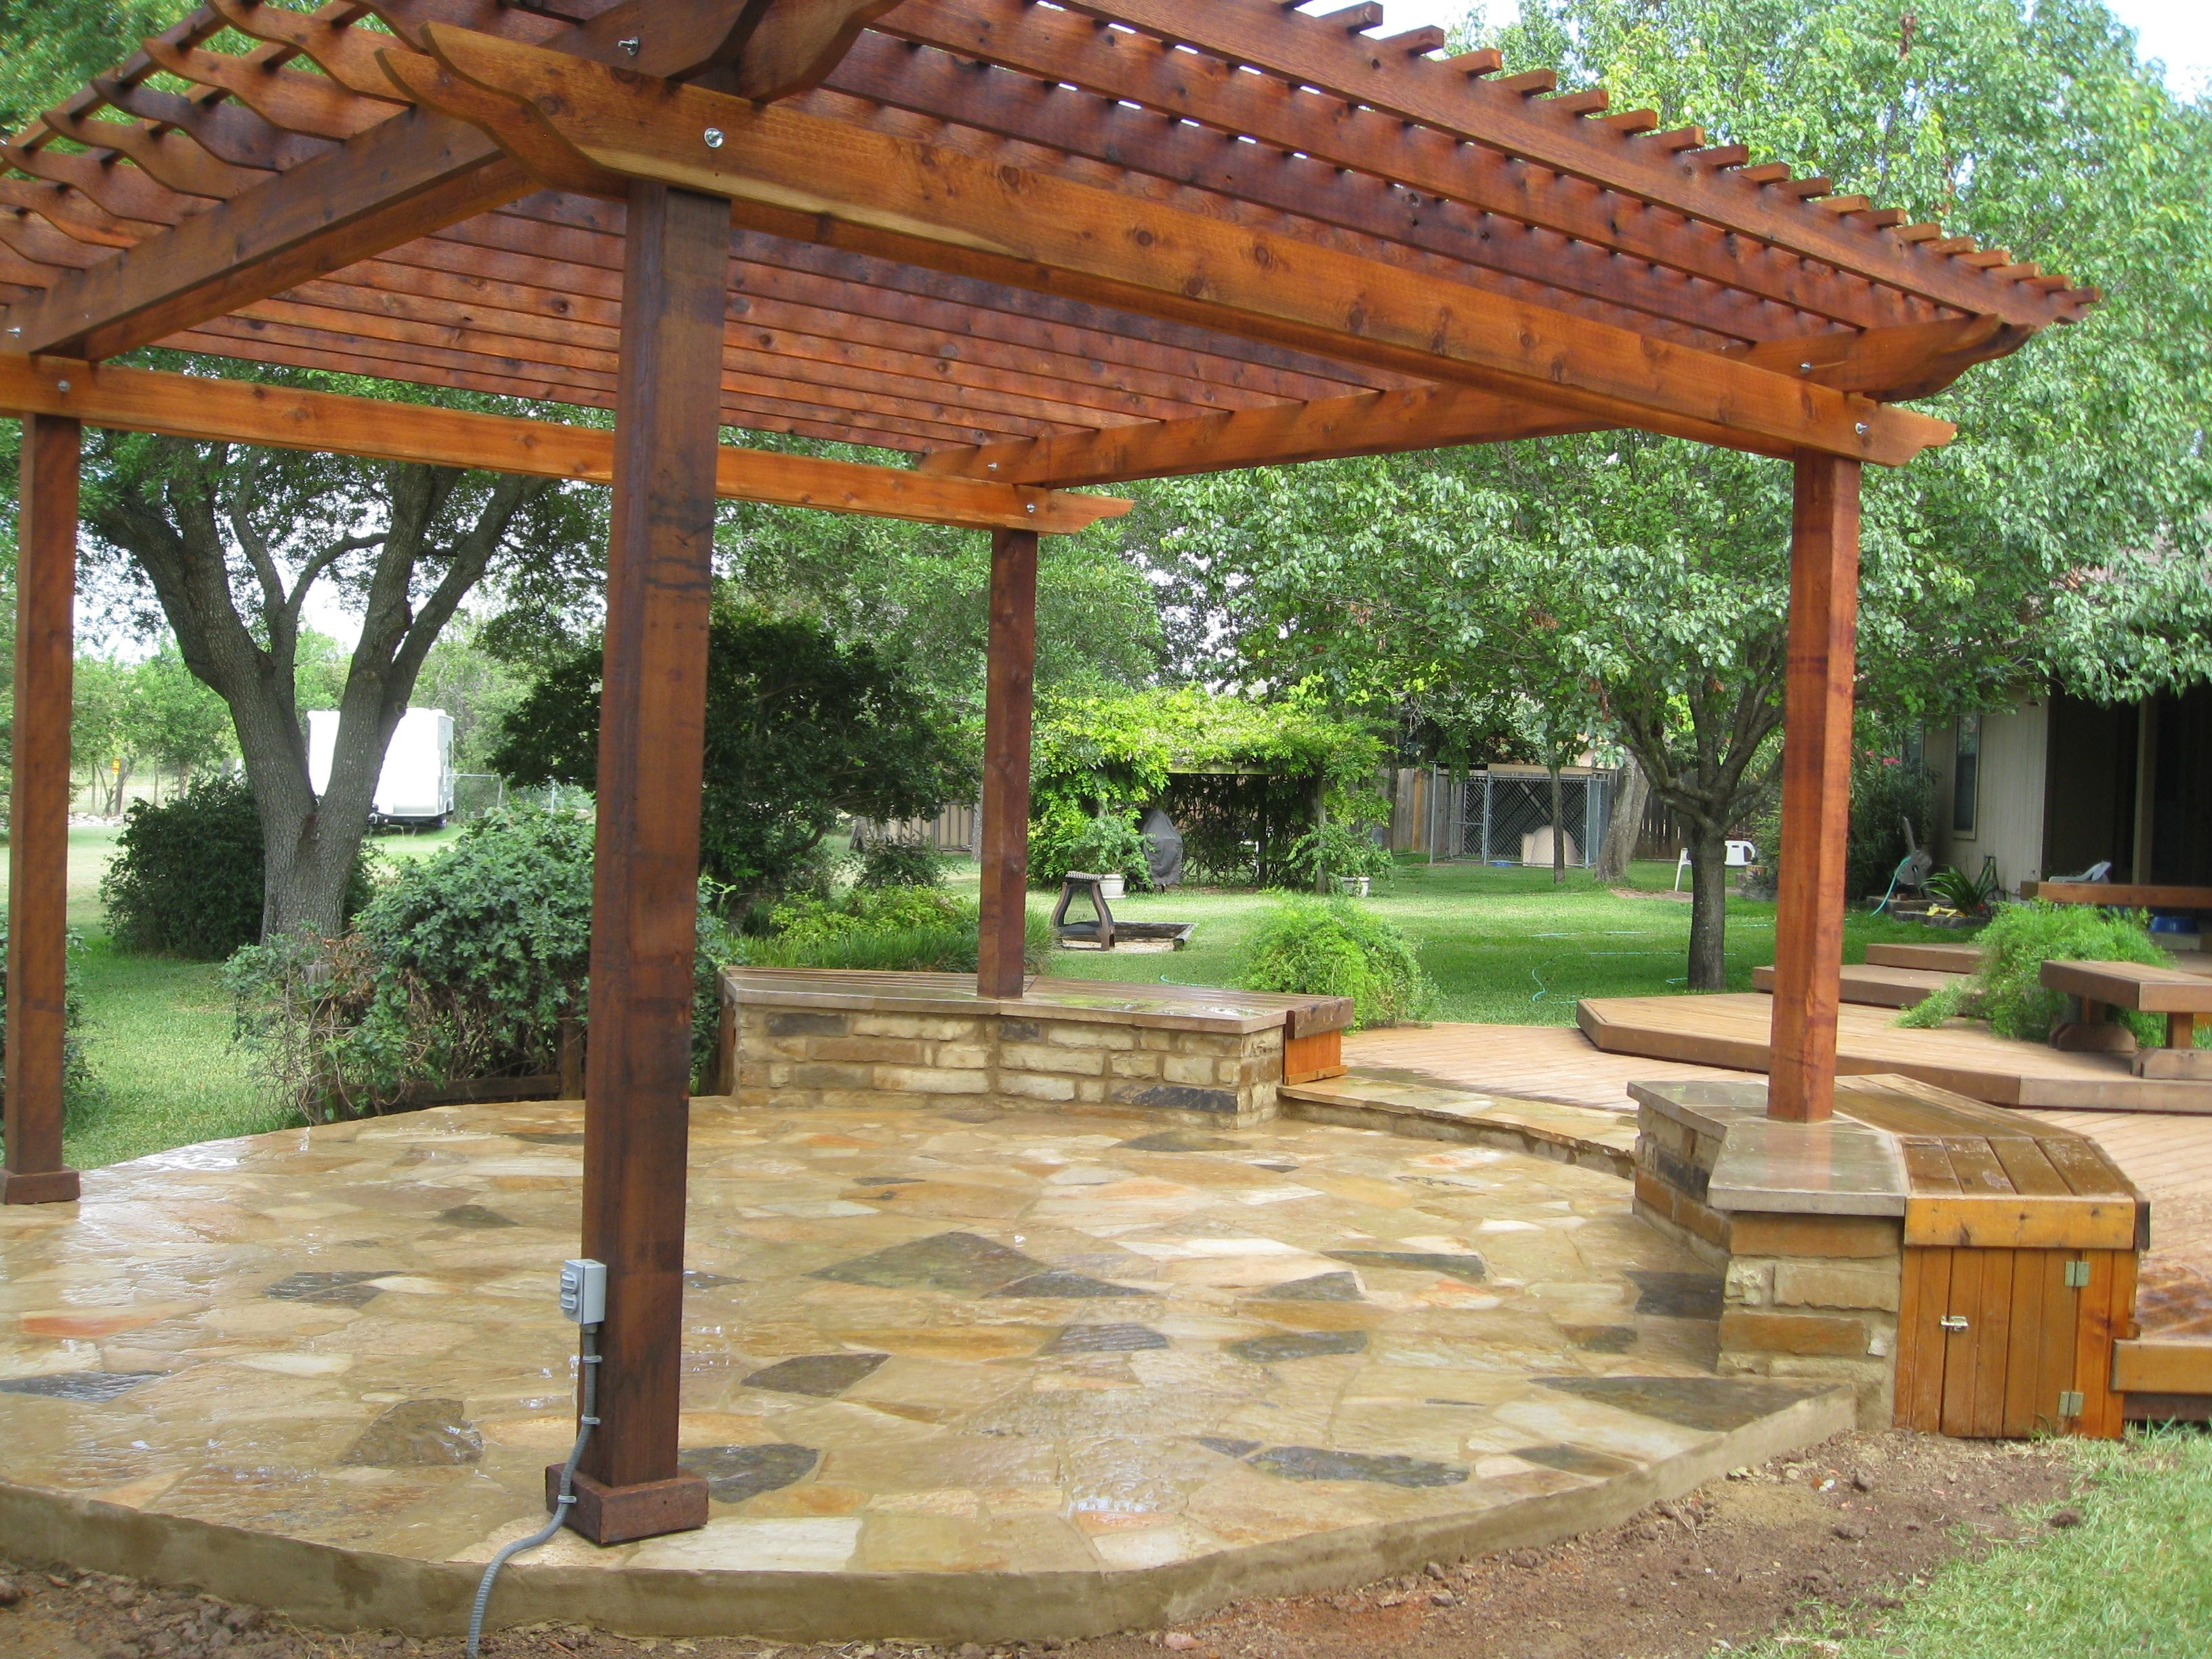 Oklahoma Flagstone Patio constructed by OL Yeller Landscaping